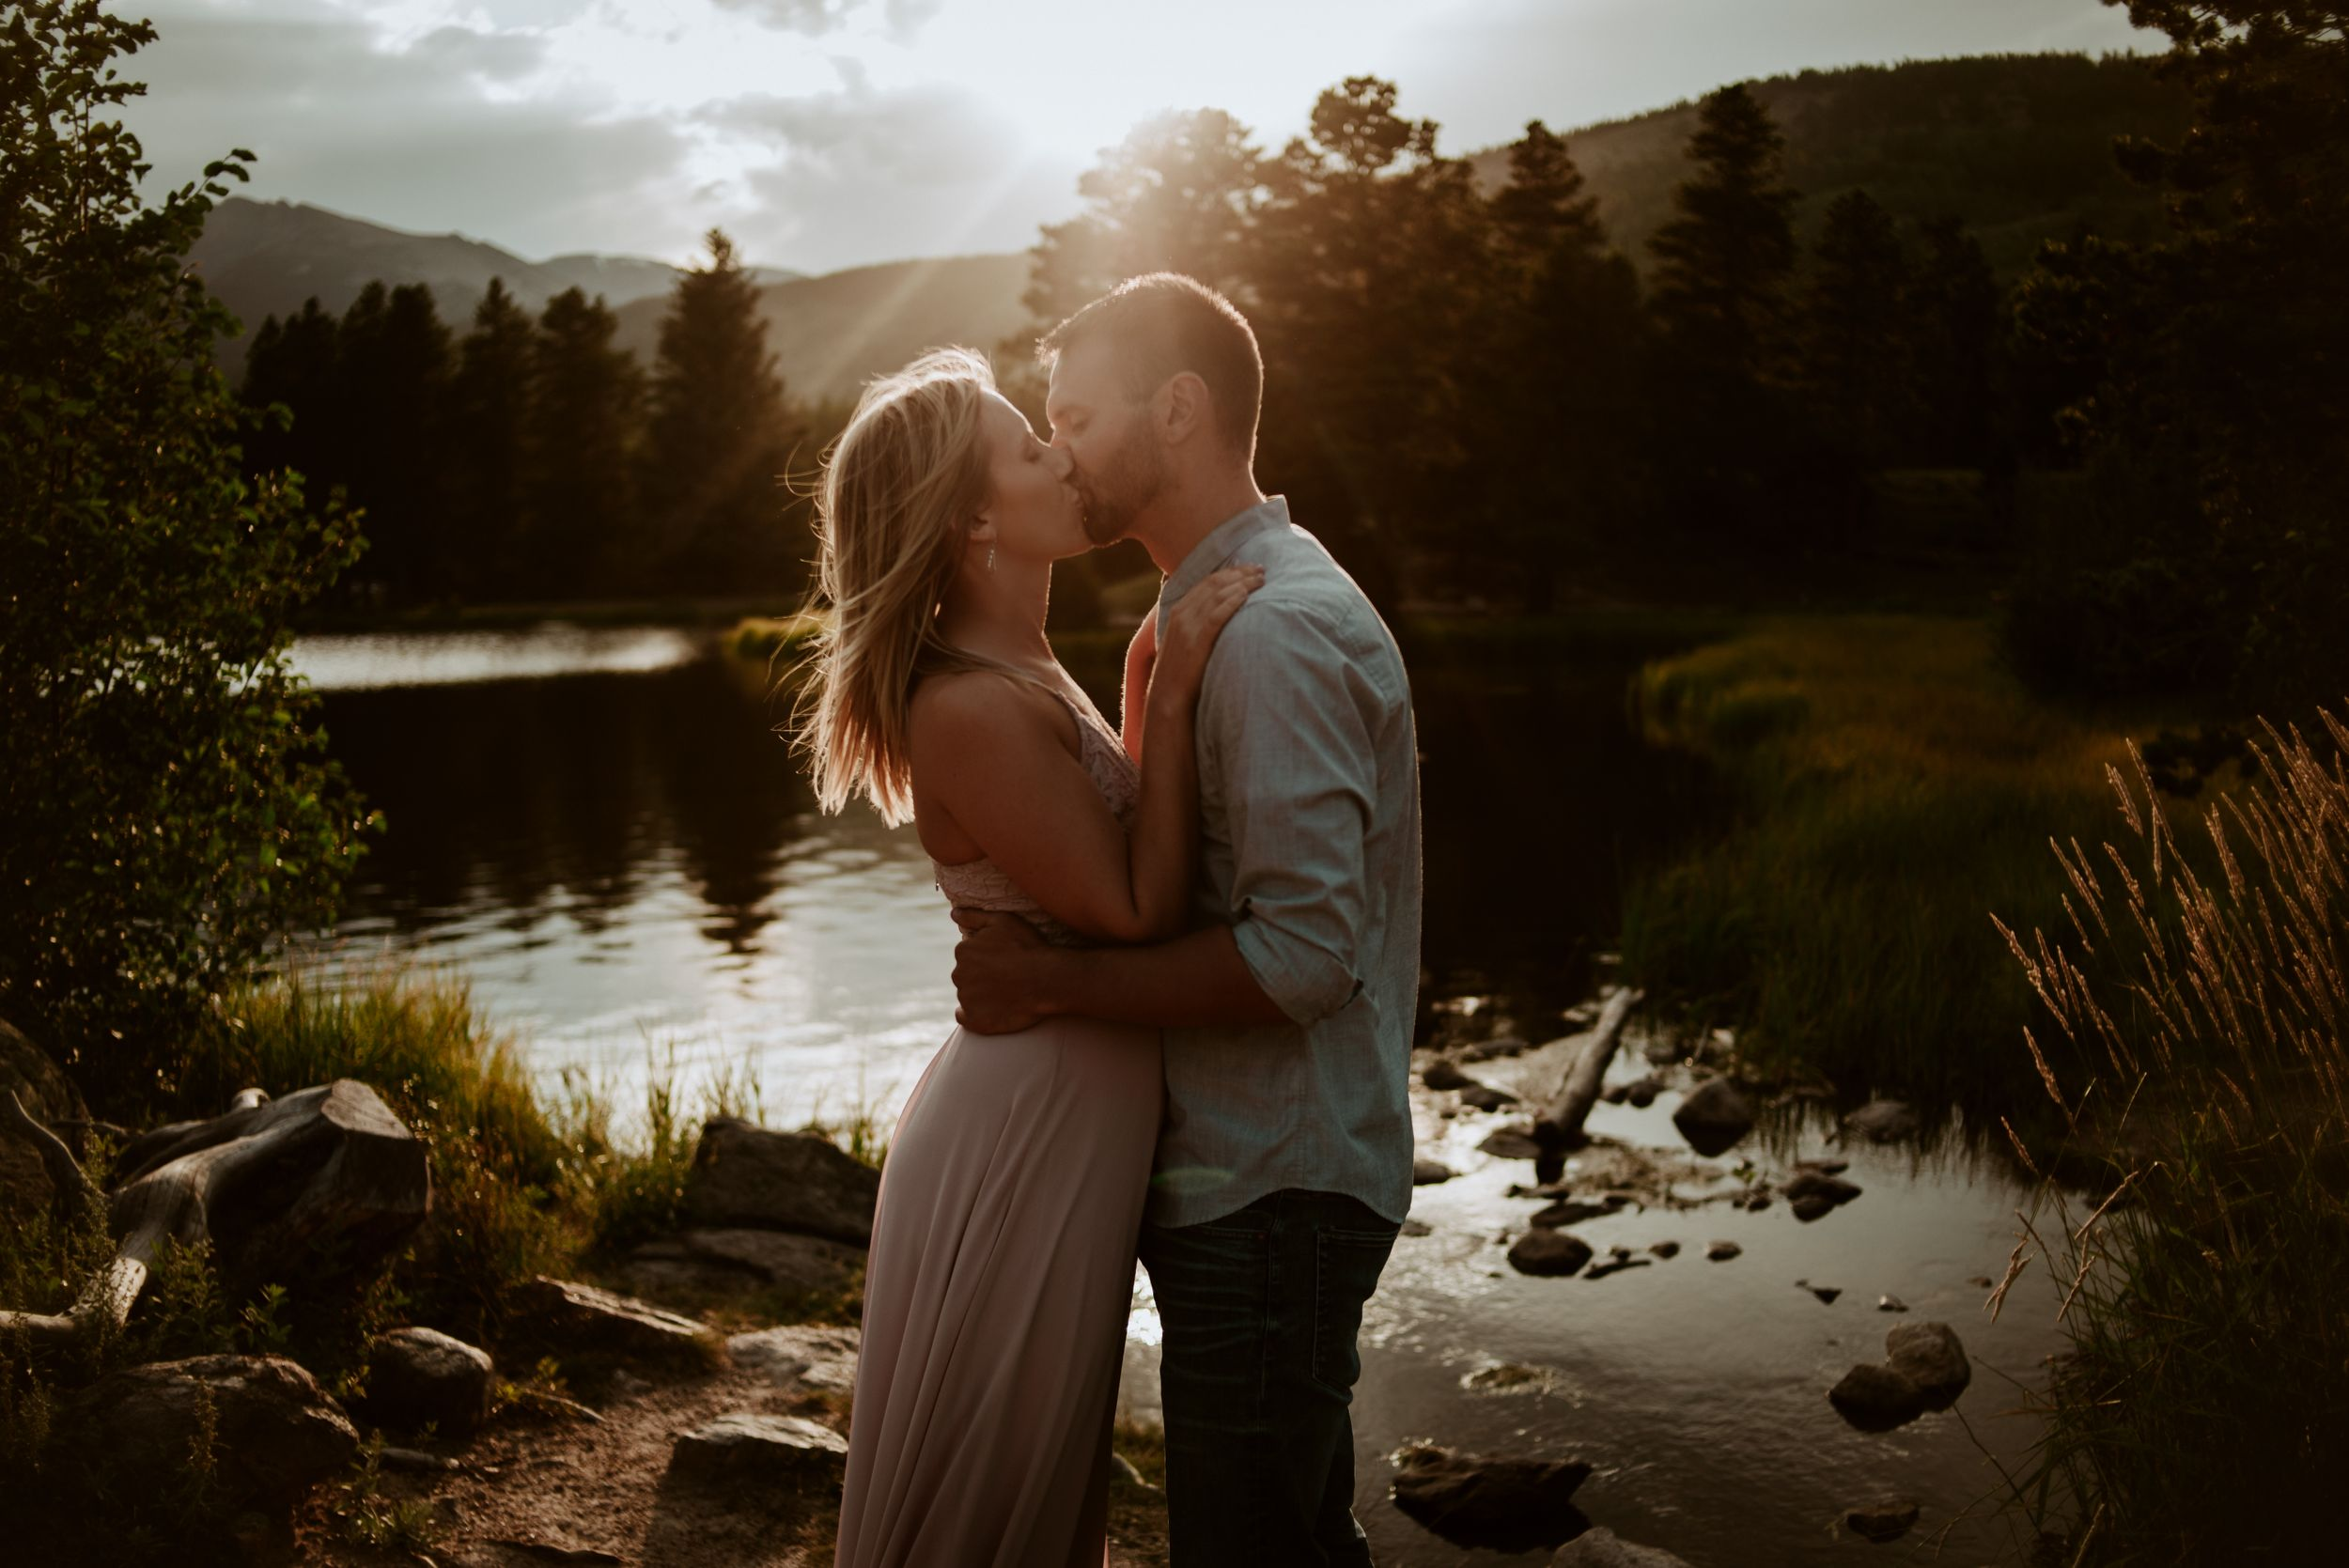 fort collins engagement photographer, mountain engagement session at picknic rock in fort collins